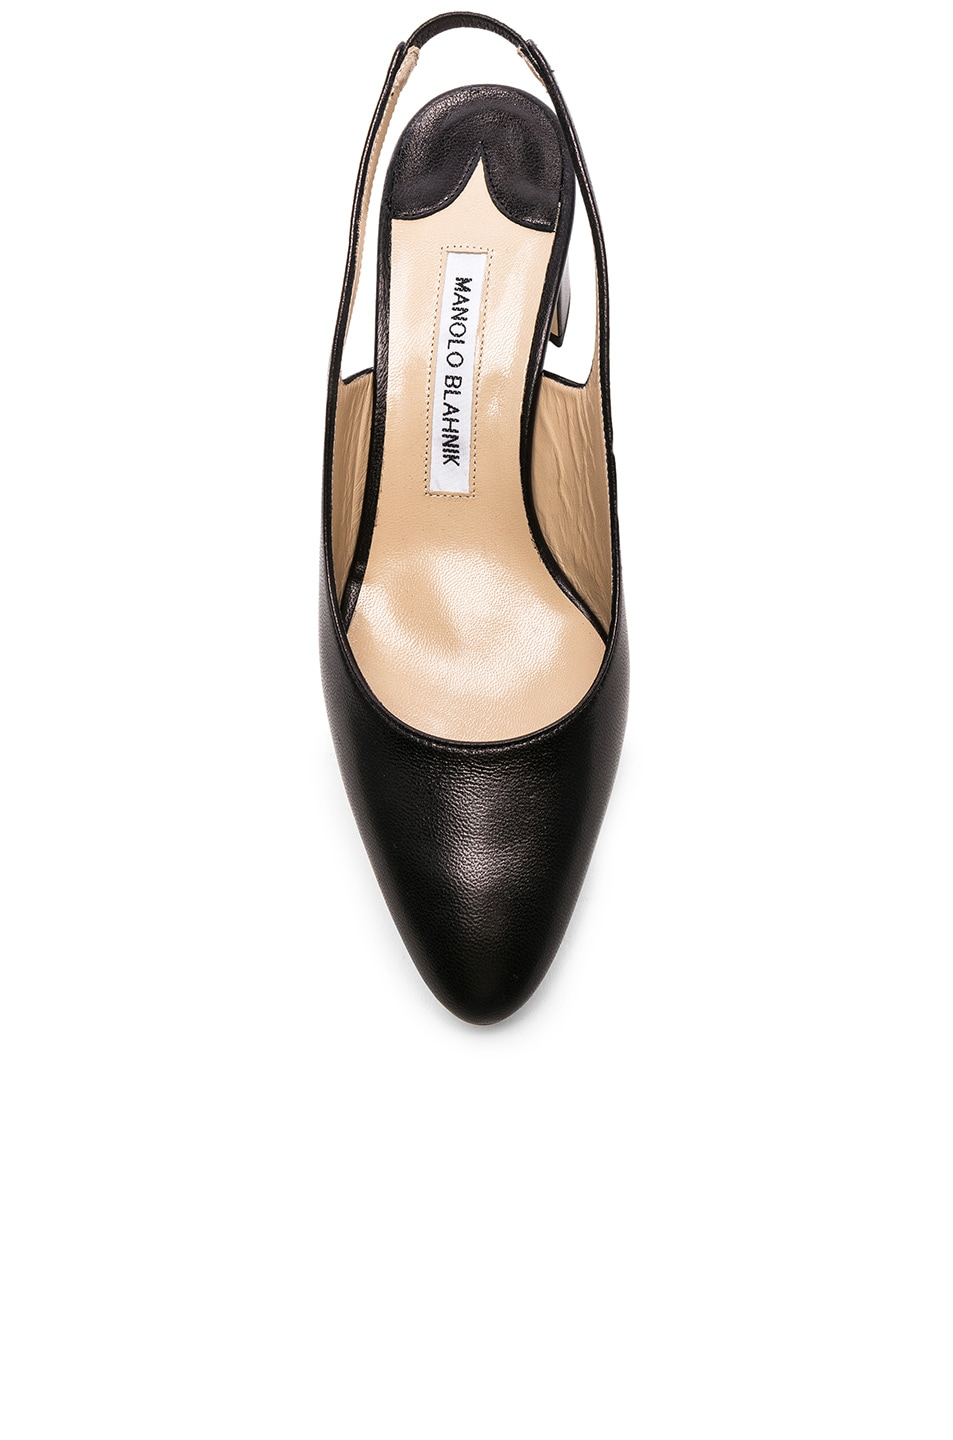 Image 4 of Manolo Blahnik Leather Allurasa 50 Heels in Black Nappa